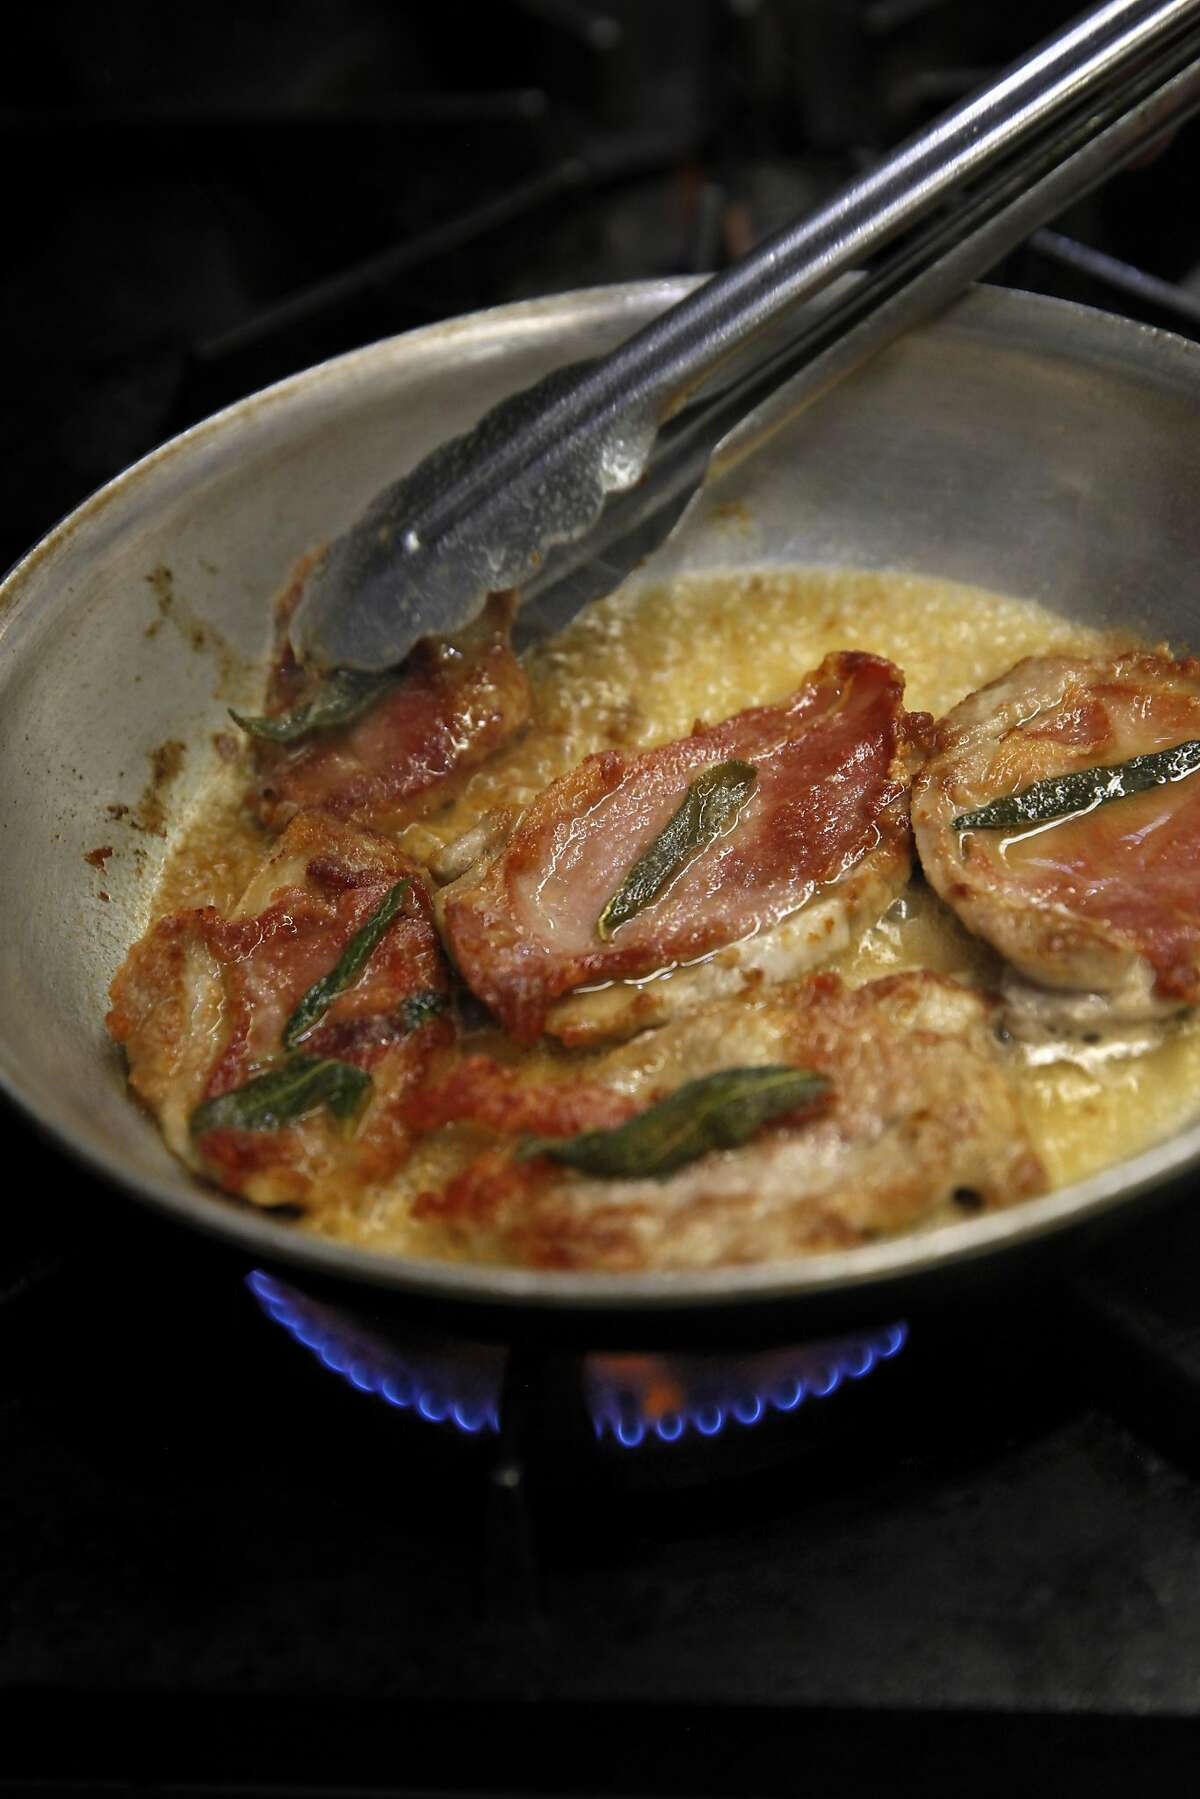 Veal Saltimbocca at Pietro Trattoria in Lodi, Calif., on Thursday, August 20, 2015 features veal, prosciutto and sage they grow themselves.